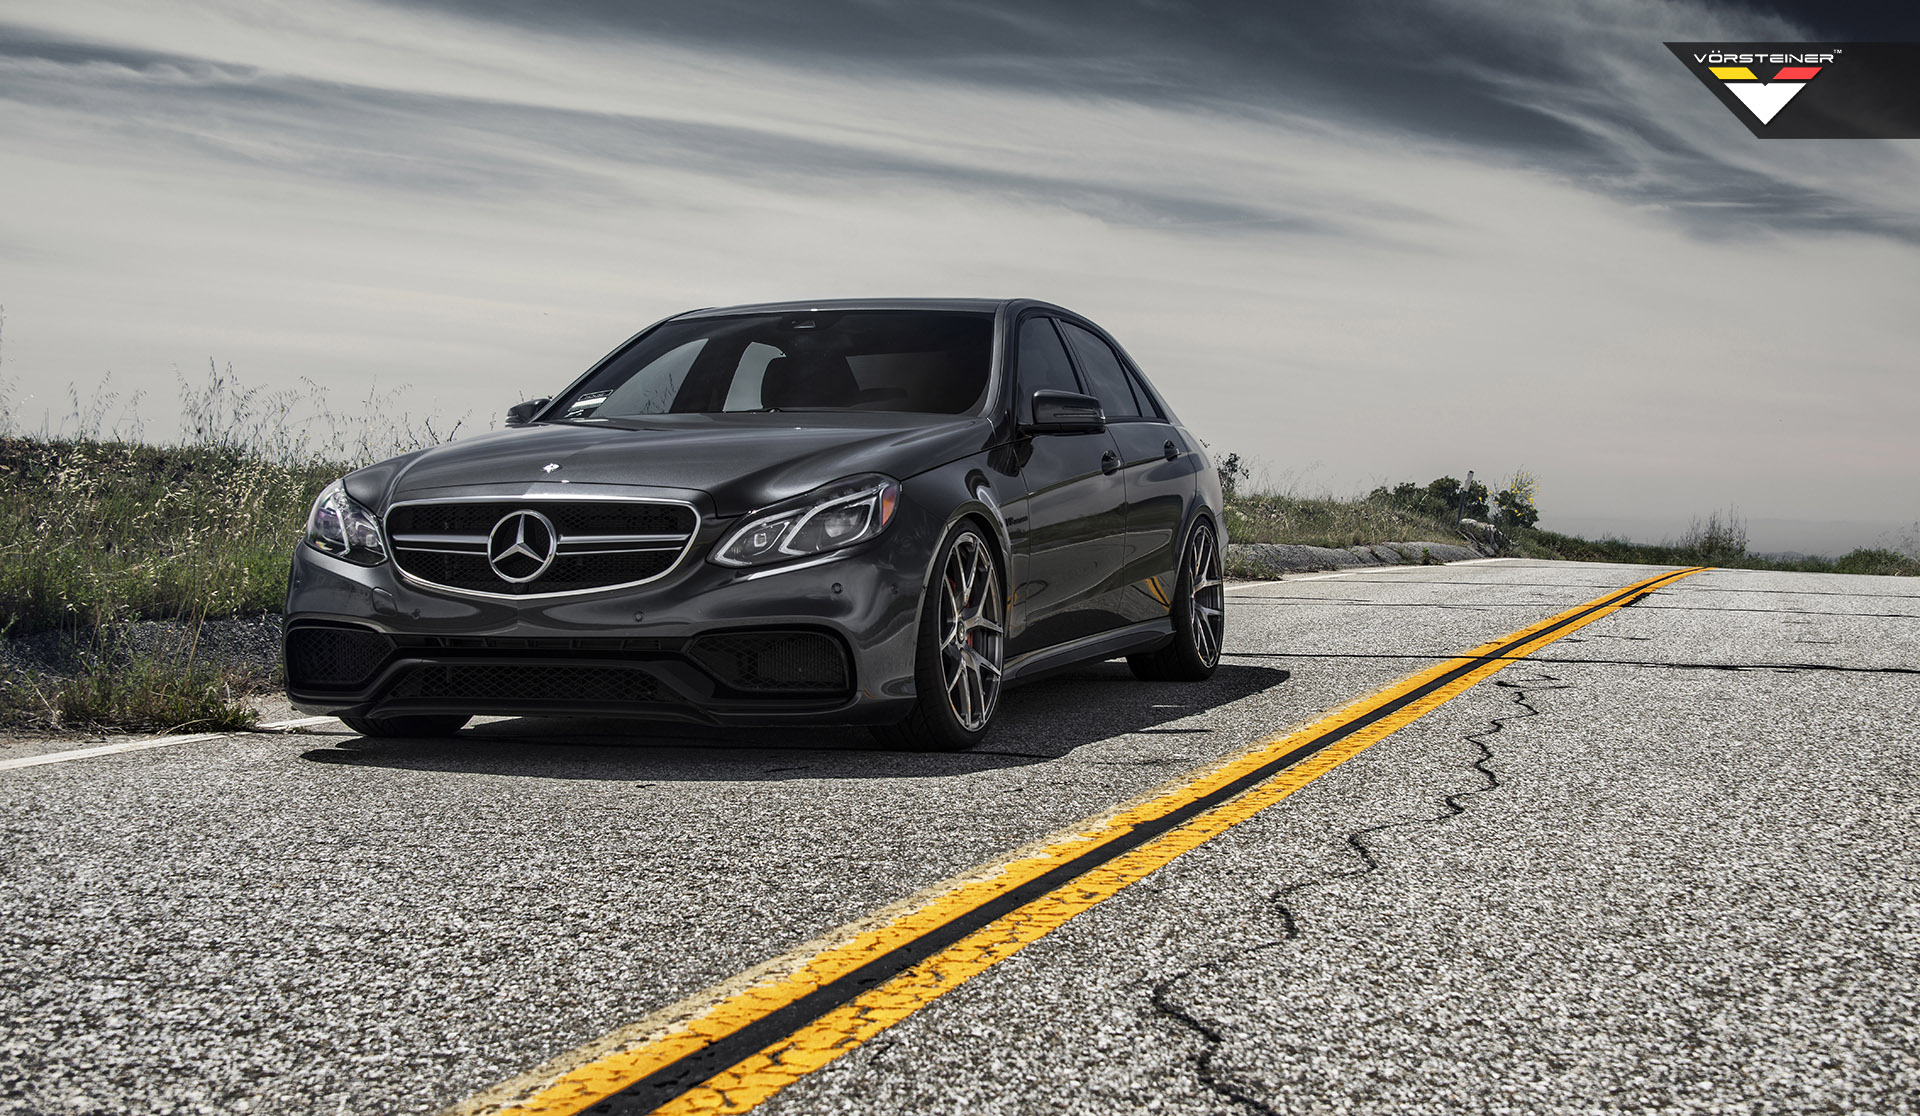 2014 vorsteiner mercedes benz e63 amg s 4matic for Mercedes benz e63 s amg